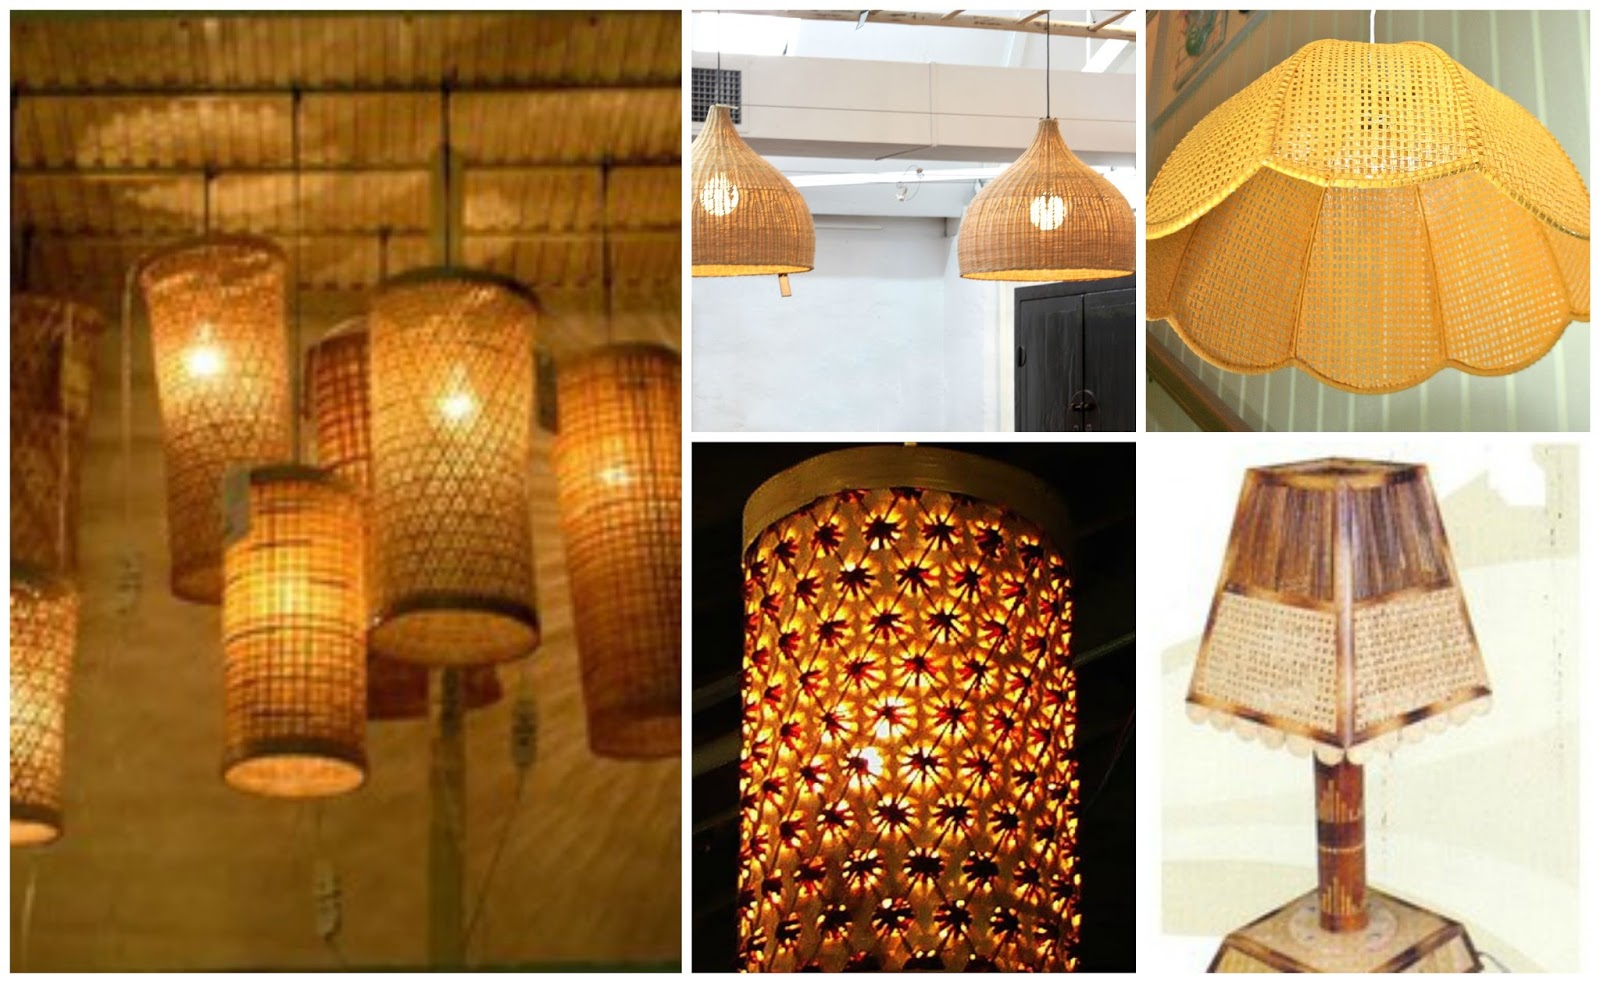 Cane craft allied industries cane and bamboo lampshades for a cane and bamboo lampshades for a beautiful looking home mozeypictures Gallery